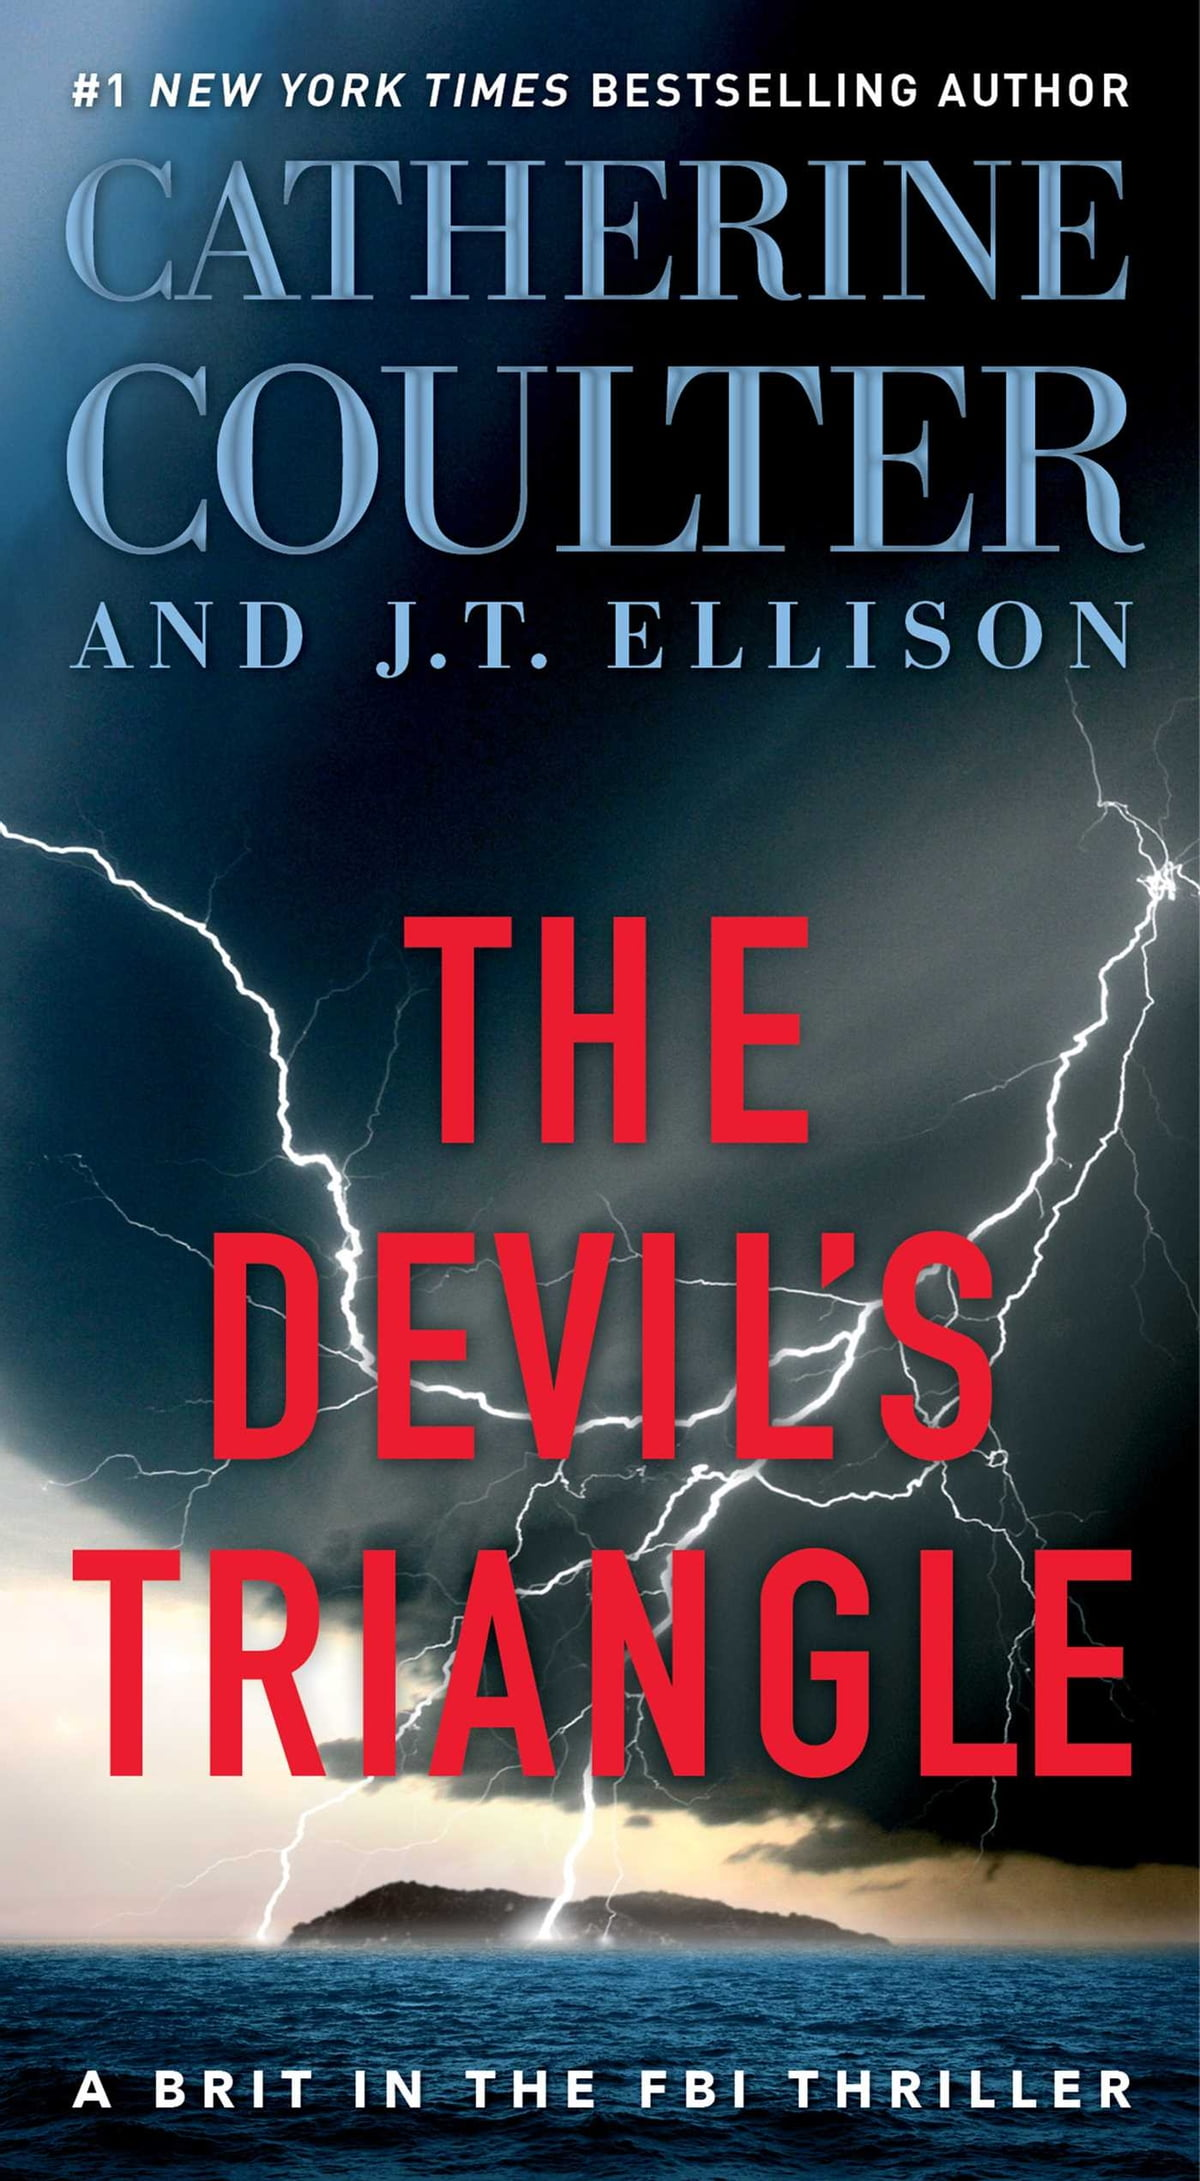 Echoes in death ebook by j d robb 9781250123145 rakuten kobo the devils triangle ebook by catherine coulter jt ellison fandeluxe Choice Image